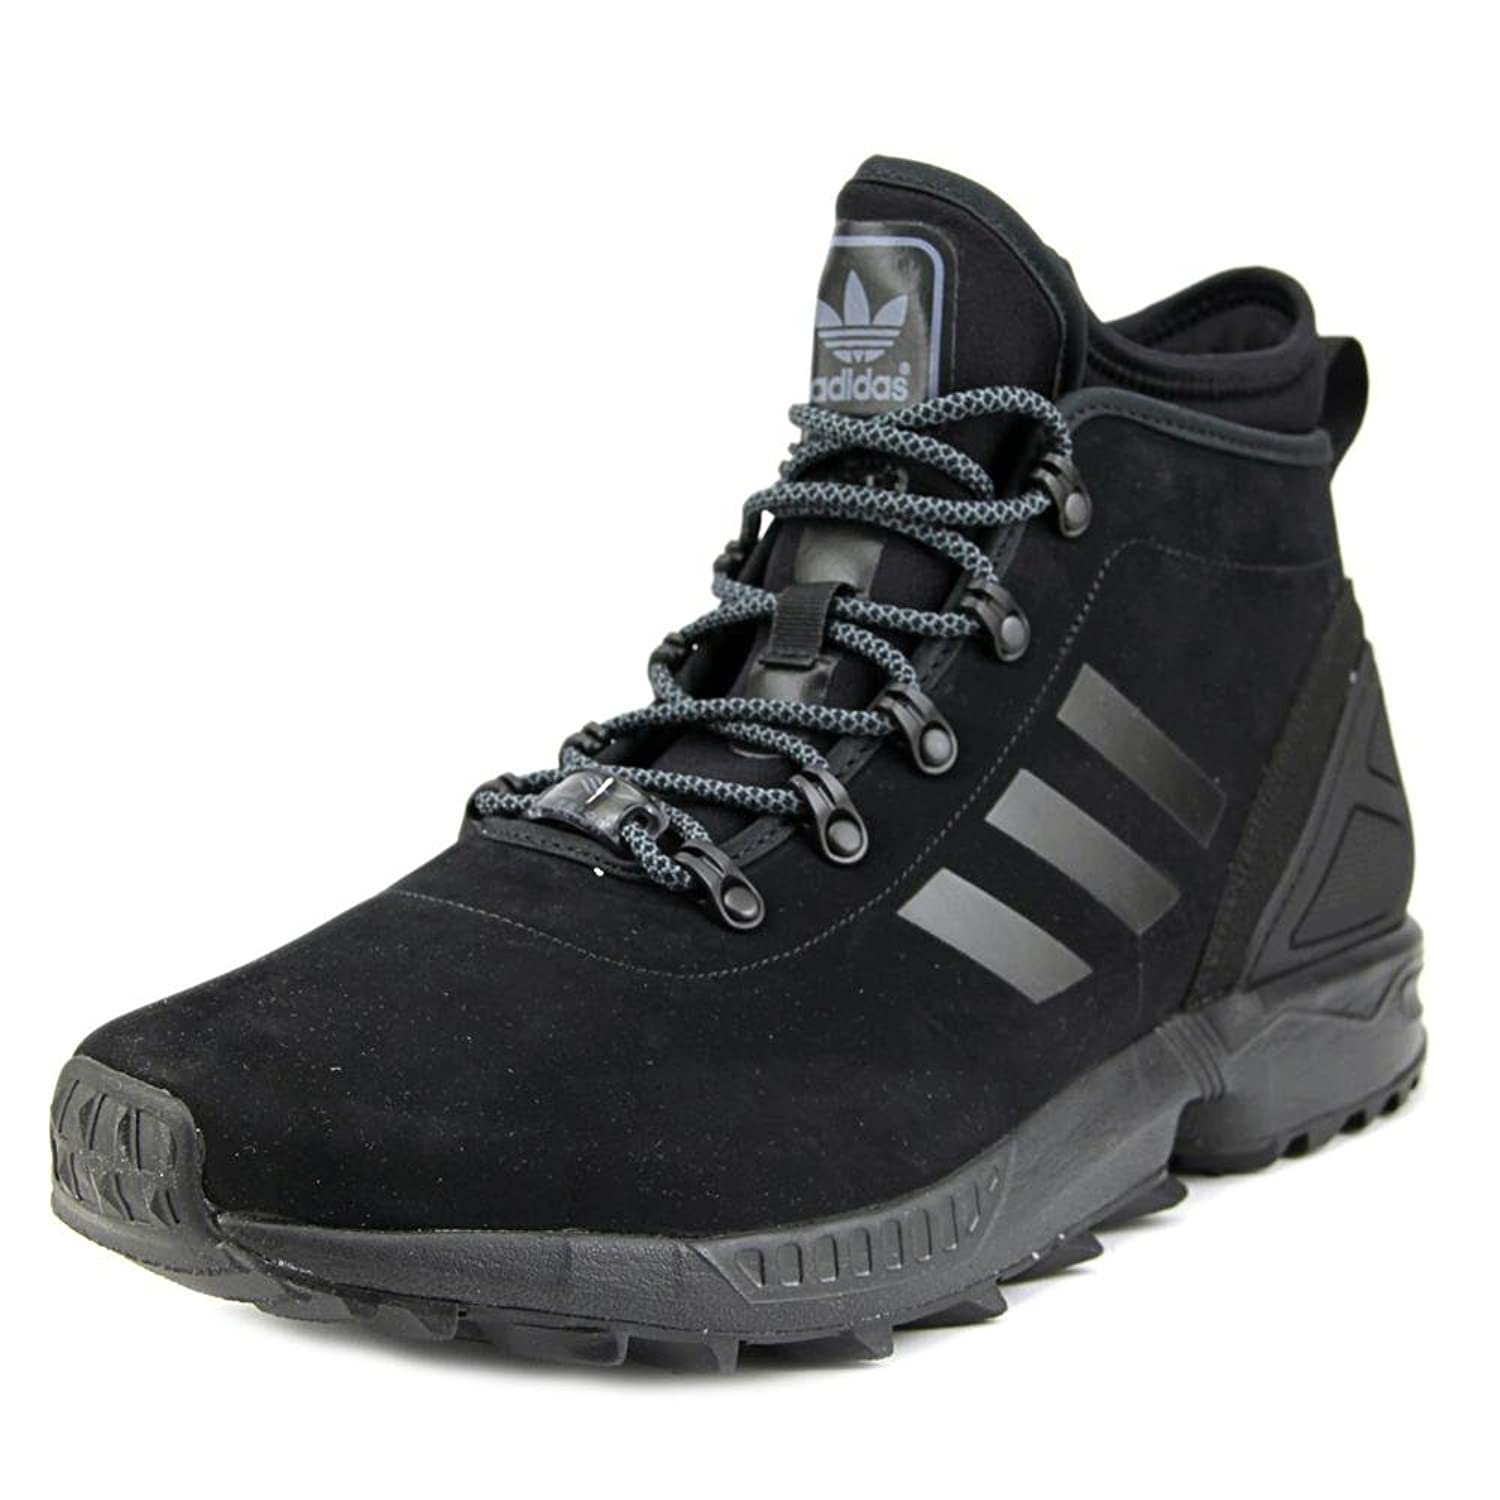 new style 422bf 972f4 ... Adidas ZX FLUX WINTER Men Round Toe Synthetic Black Sneakers ...